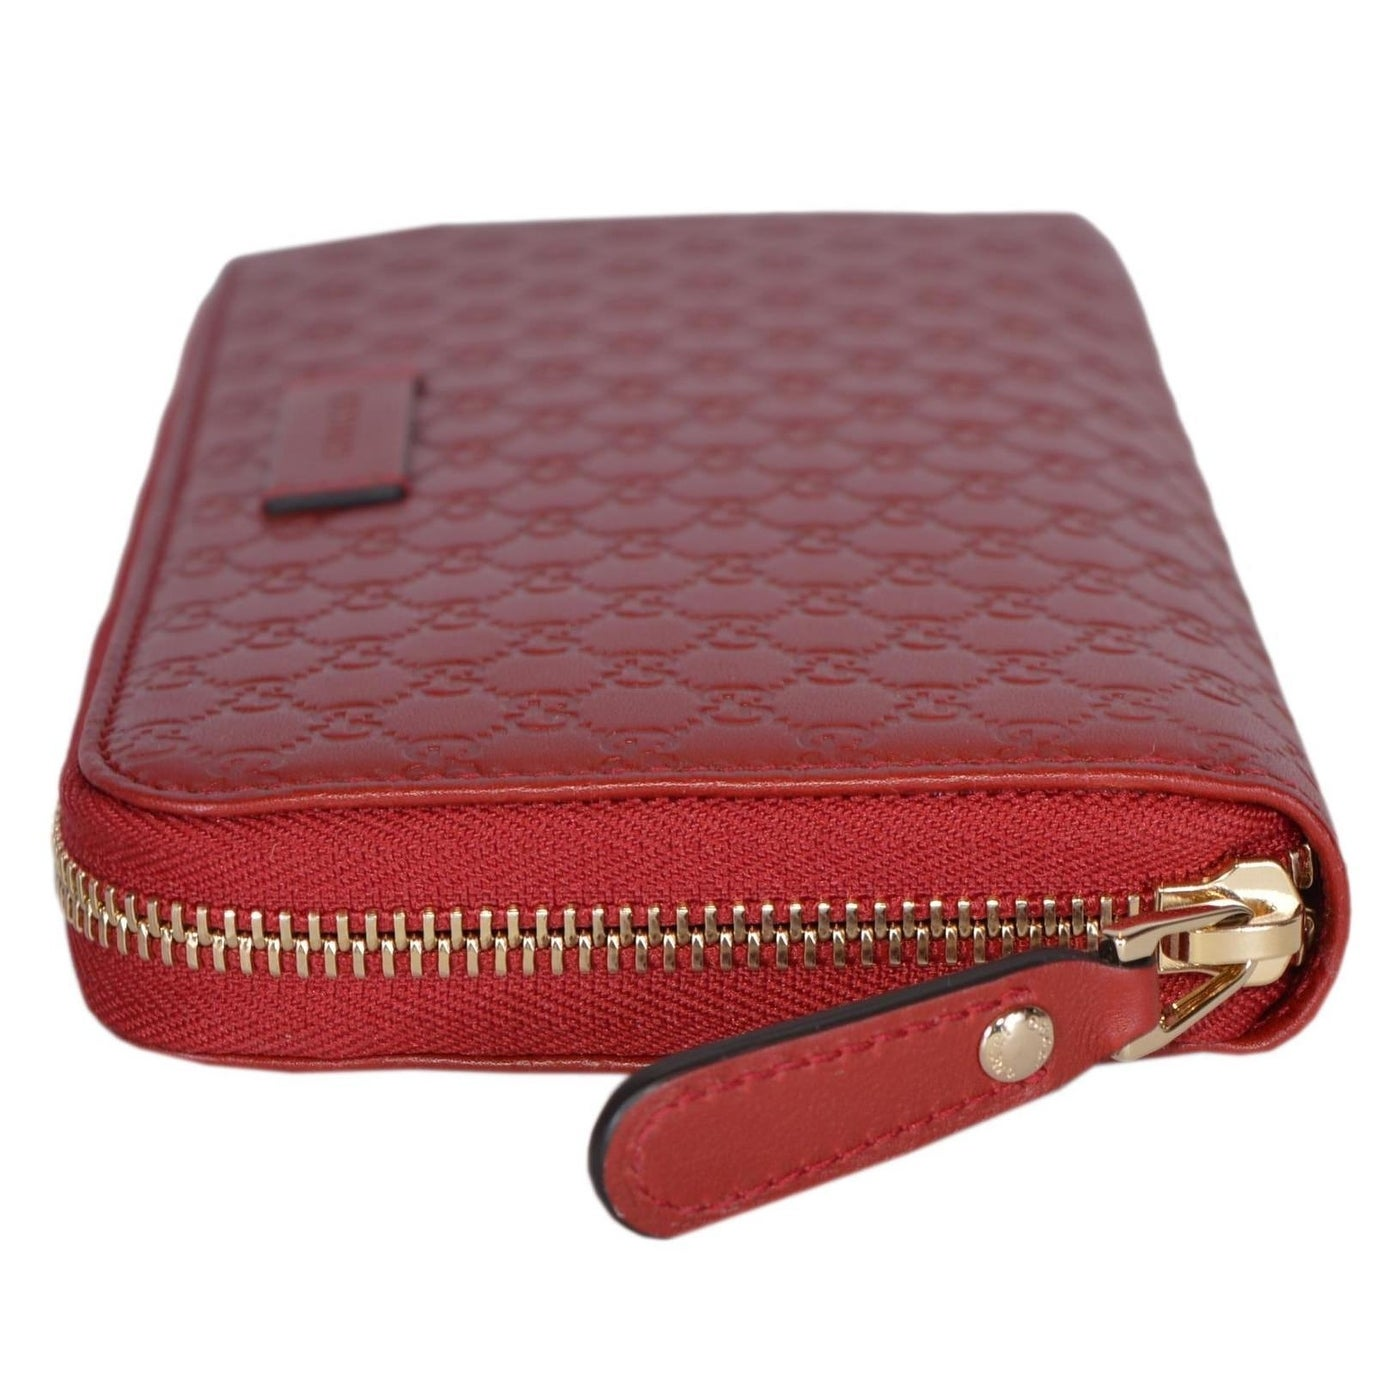 0c97db3ed3d Gucci Women s 449391 Red Leather Micro GG Guccissima Zip Around Wallet -  7.5